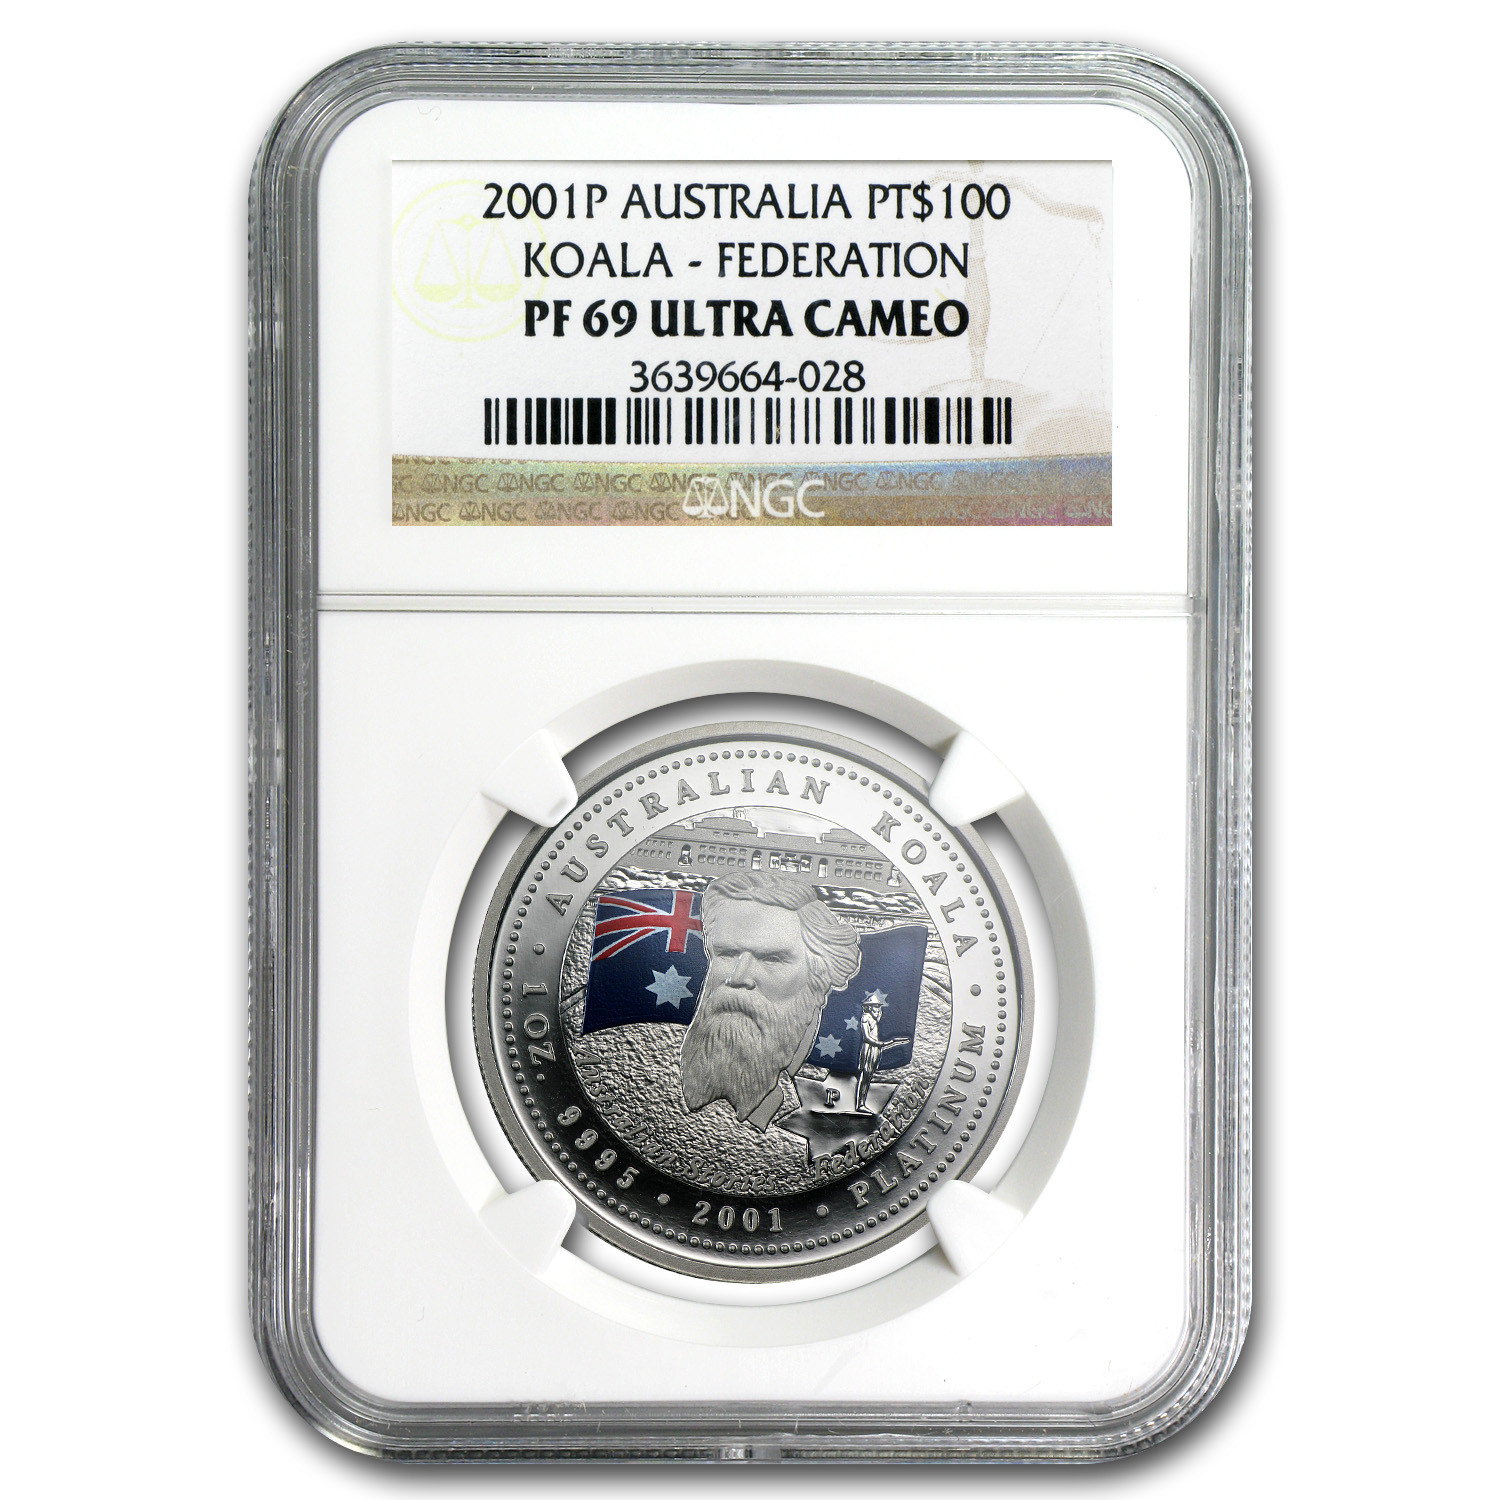 2001 Australia 1 oz Proof Platinum Koala PF-69 NGC (Federation)